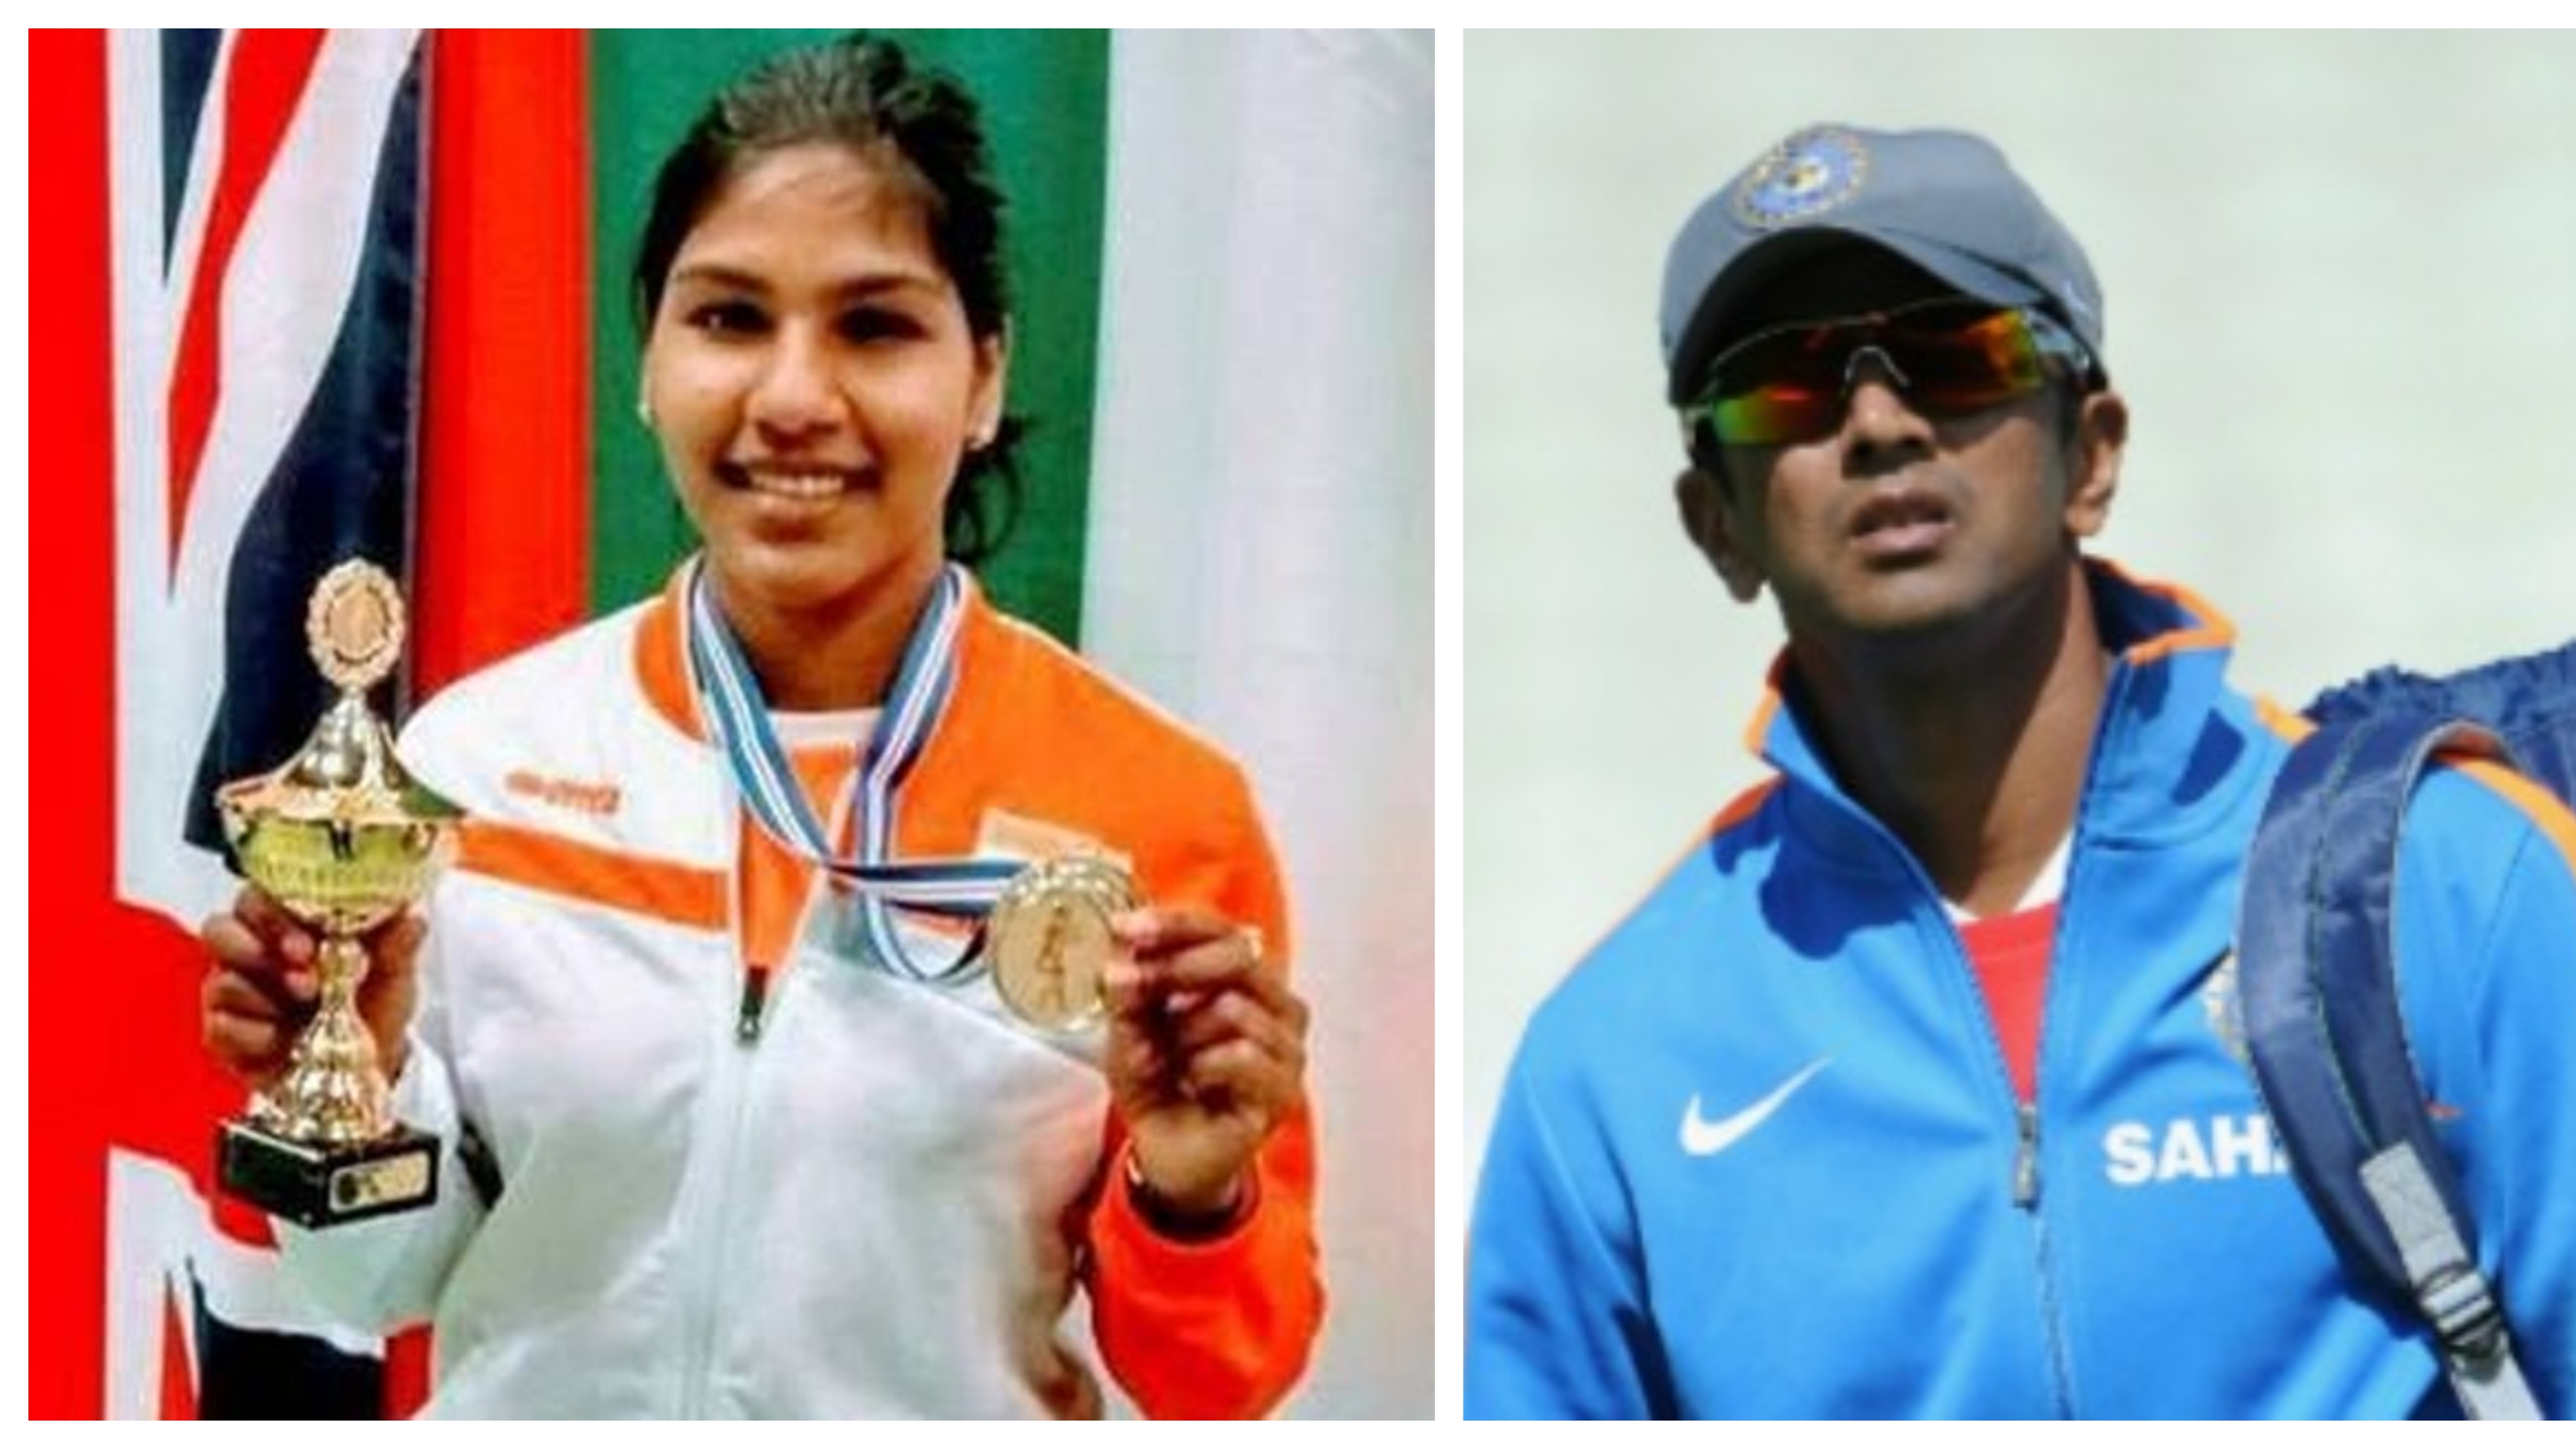 Rahul Dravid was very patient, gave us all the inputs, says Indian fencer Bhavani Devi